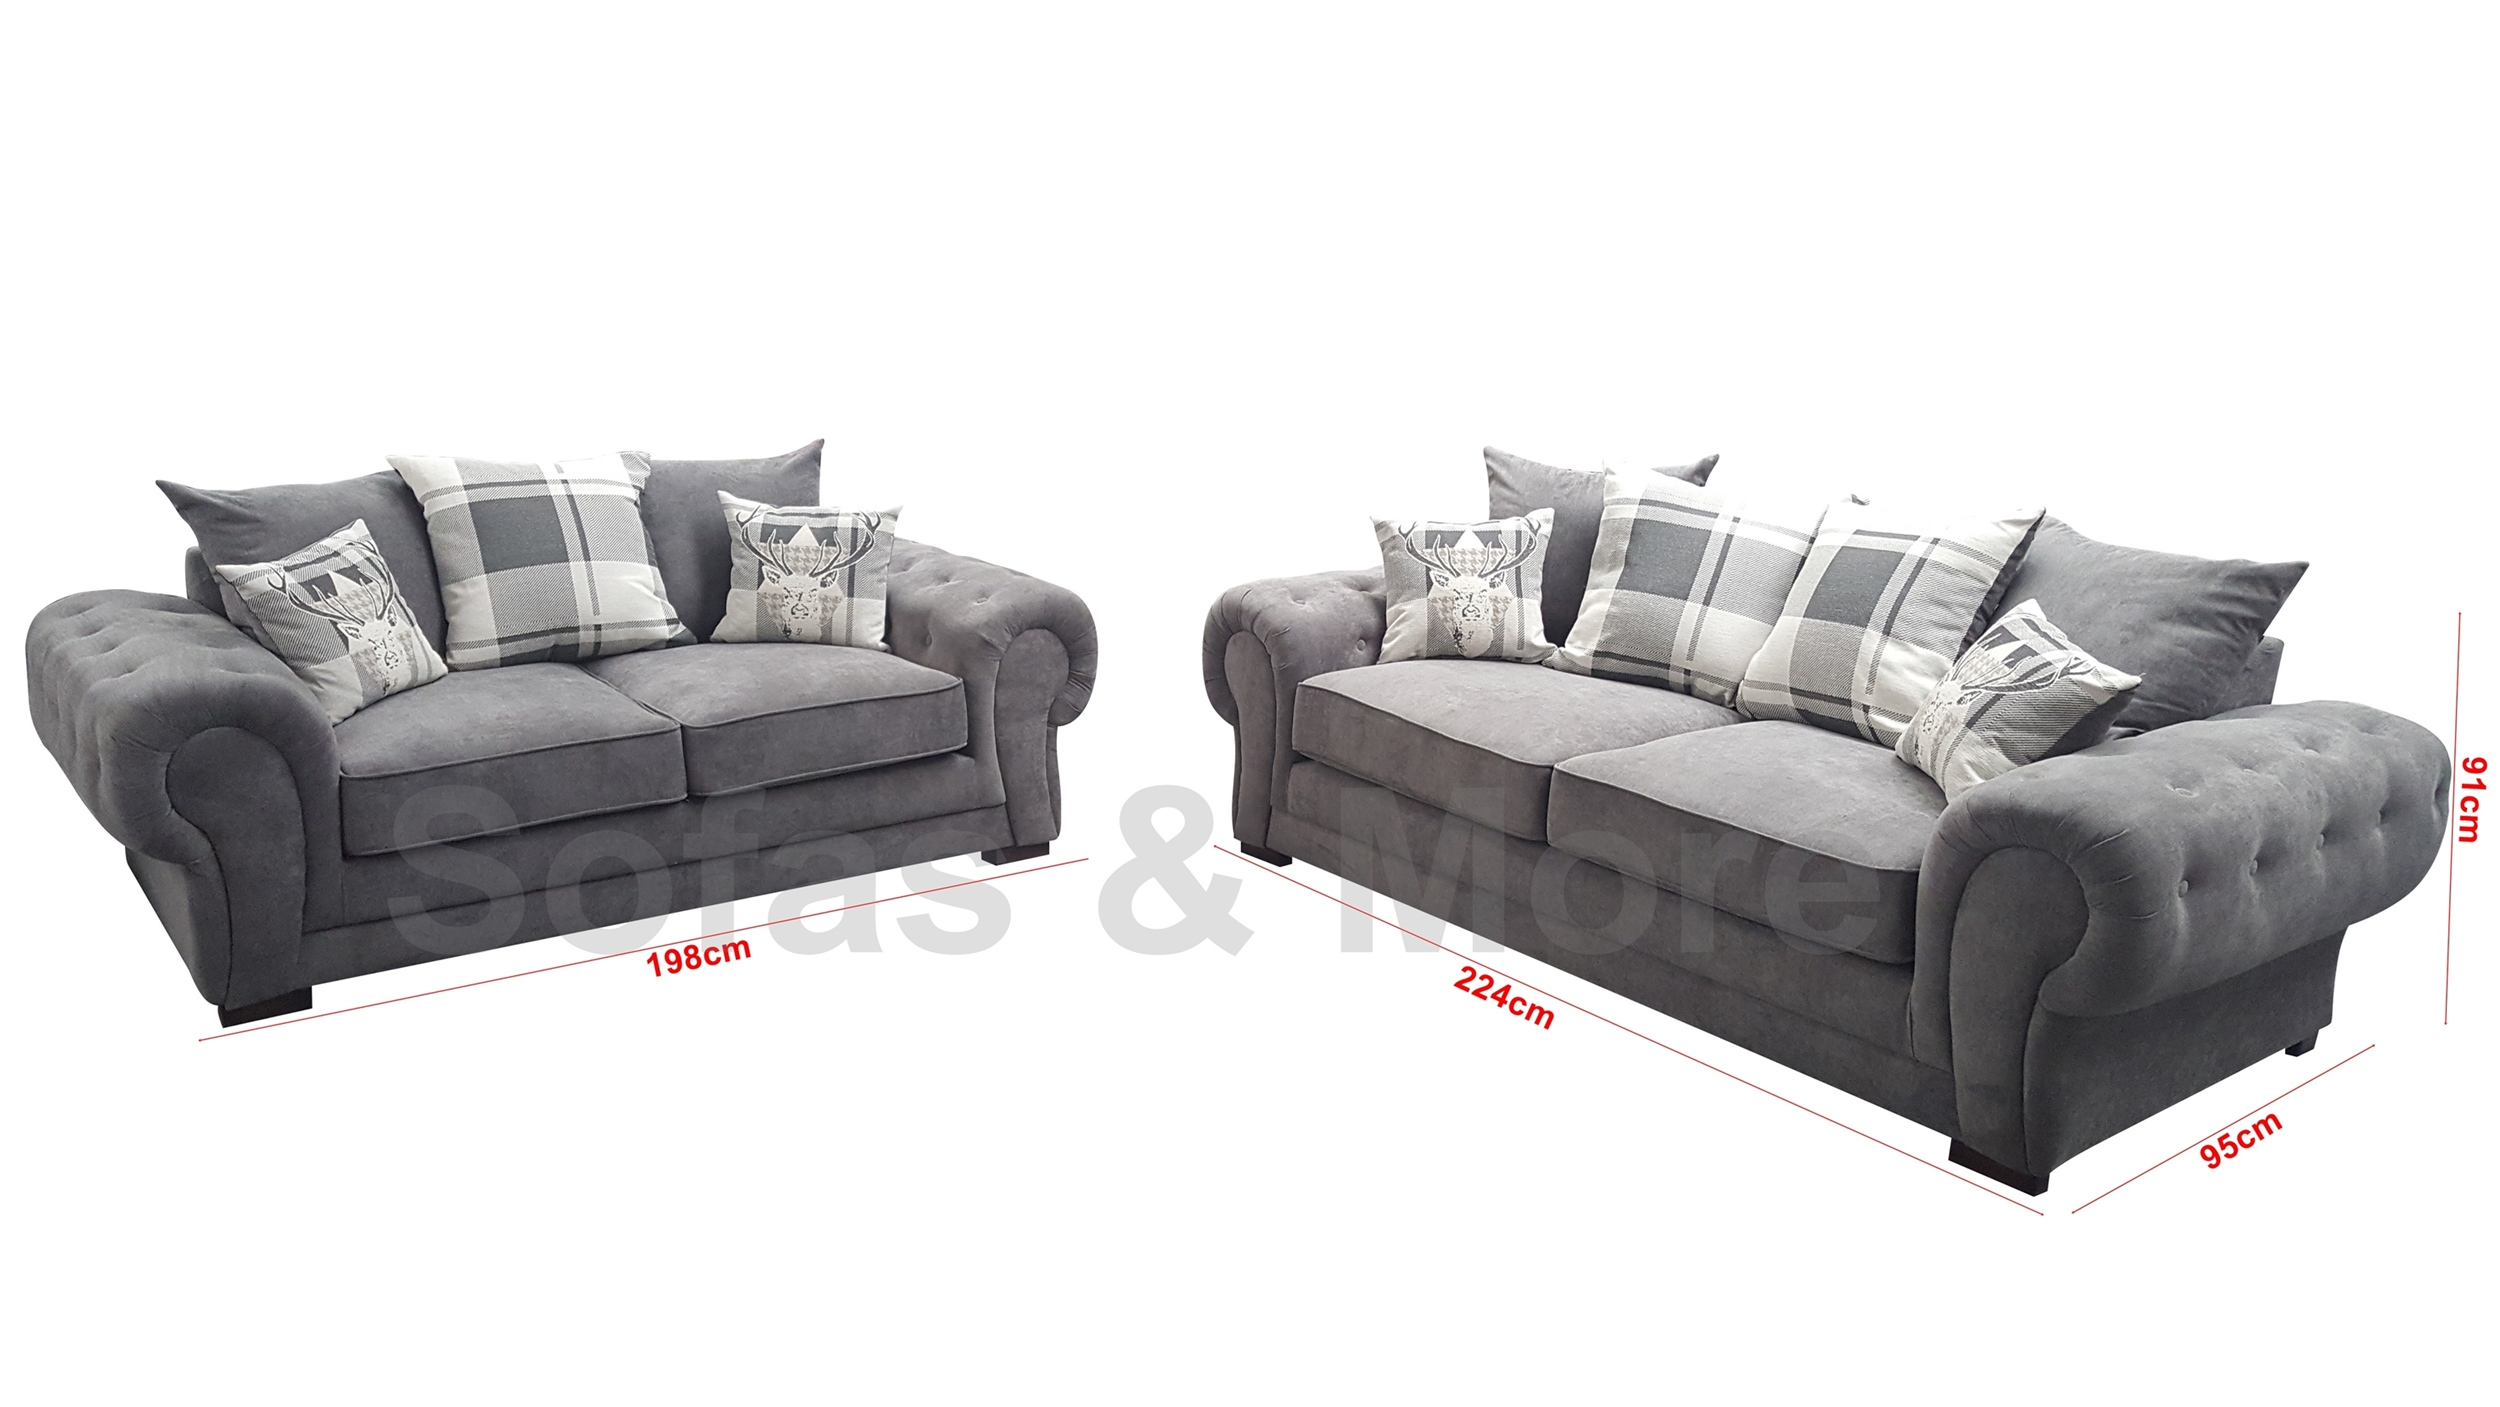 sofa retailers birmingham contemporary couch bed sleeper microfiber convertible ottoman sectional set big corner suite verona fabric 3 432 seater armchair